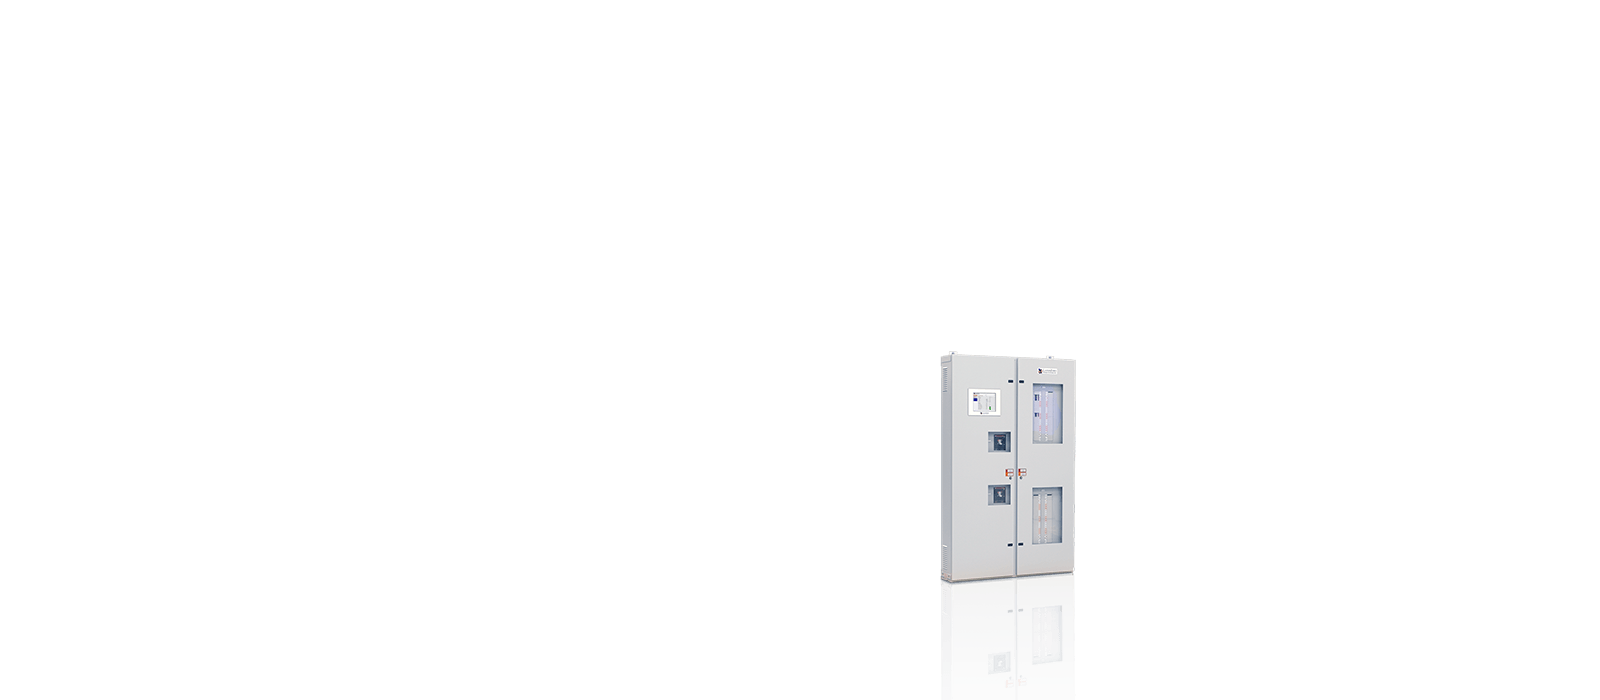 84-Circuit Wall-Mounted Electrical Power Panel